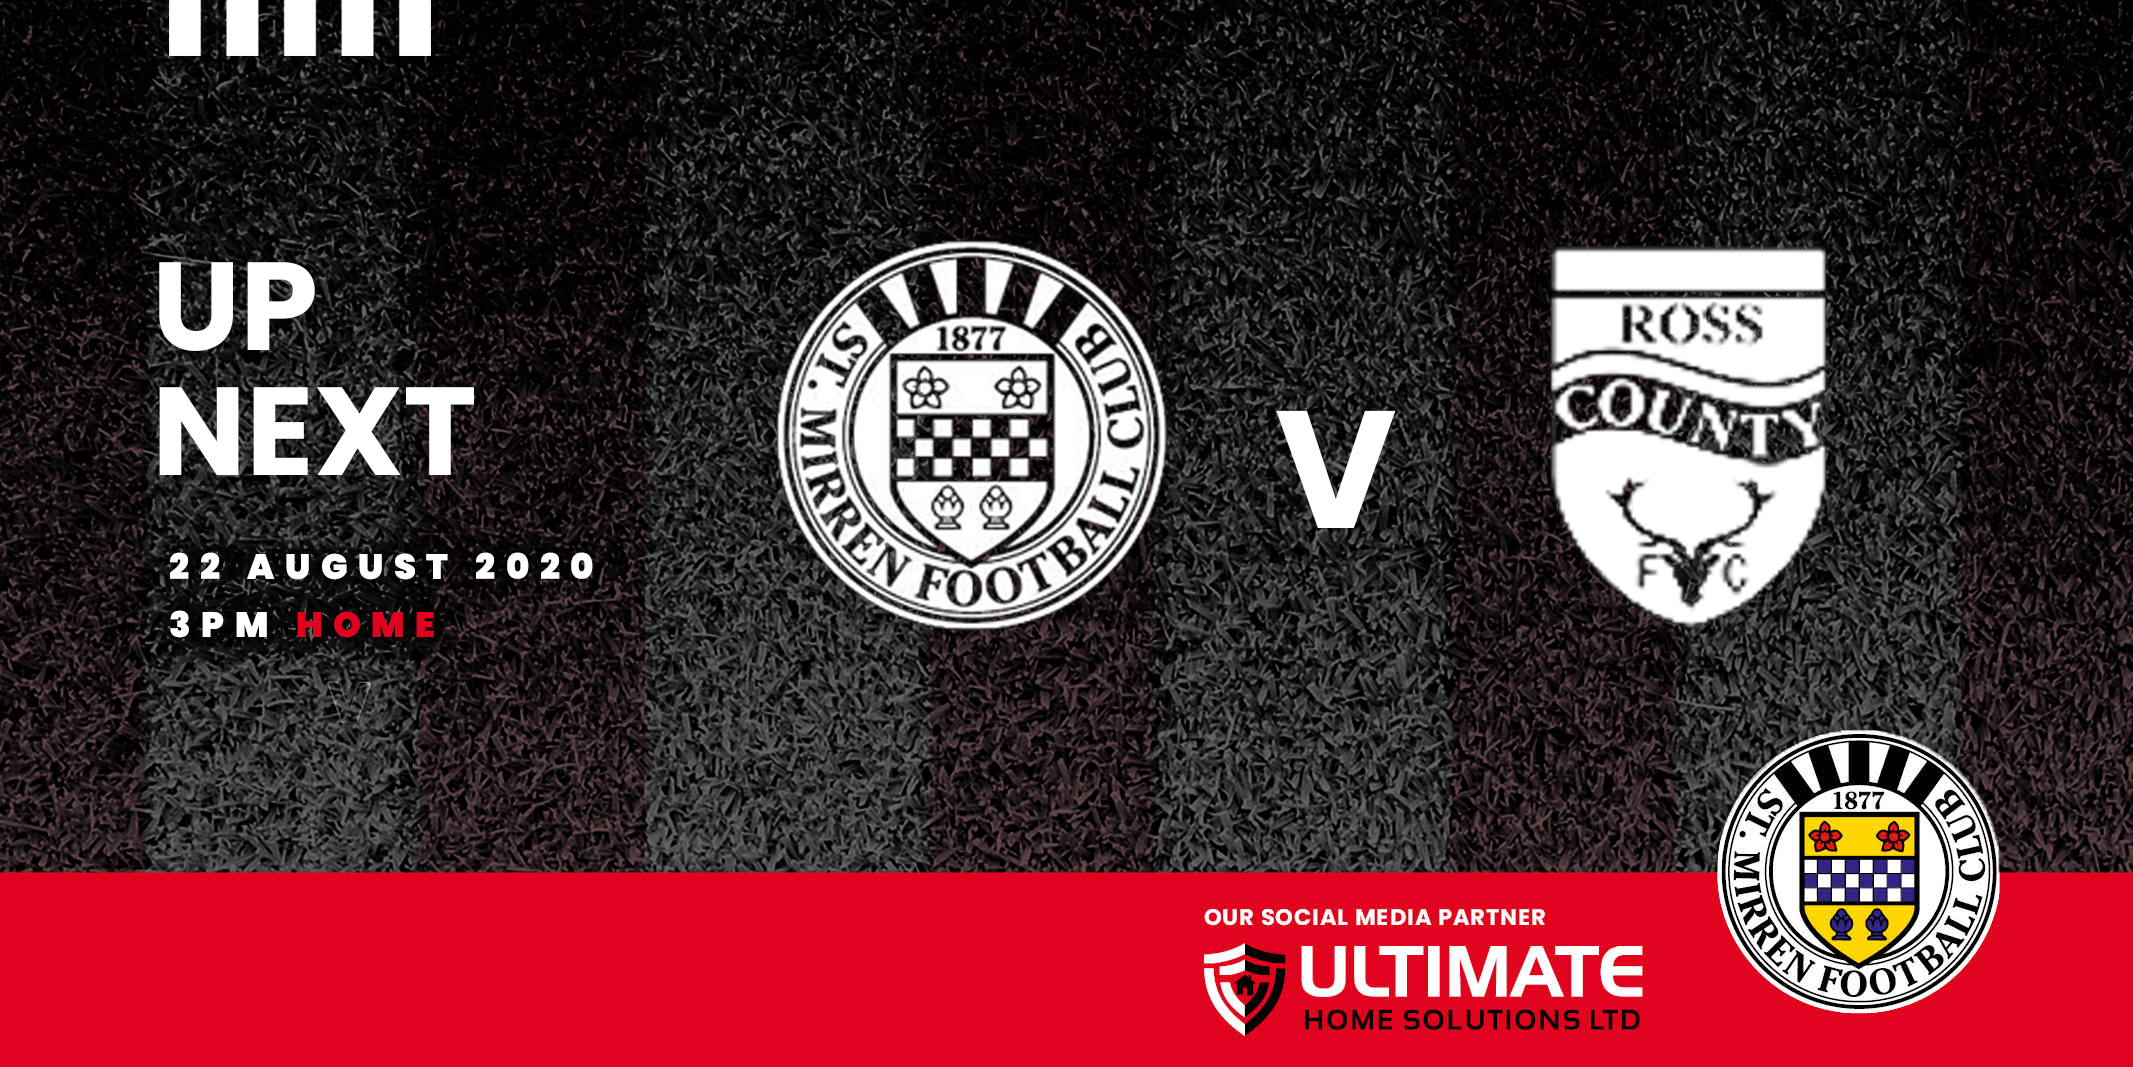 Up next: St Mirren v Ross County (22nd Aug)